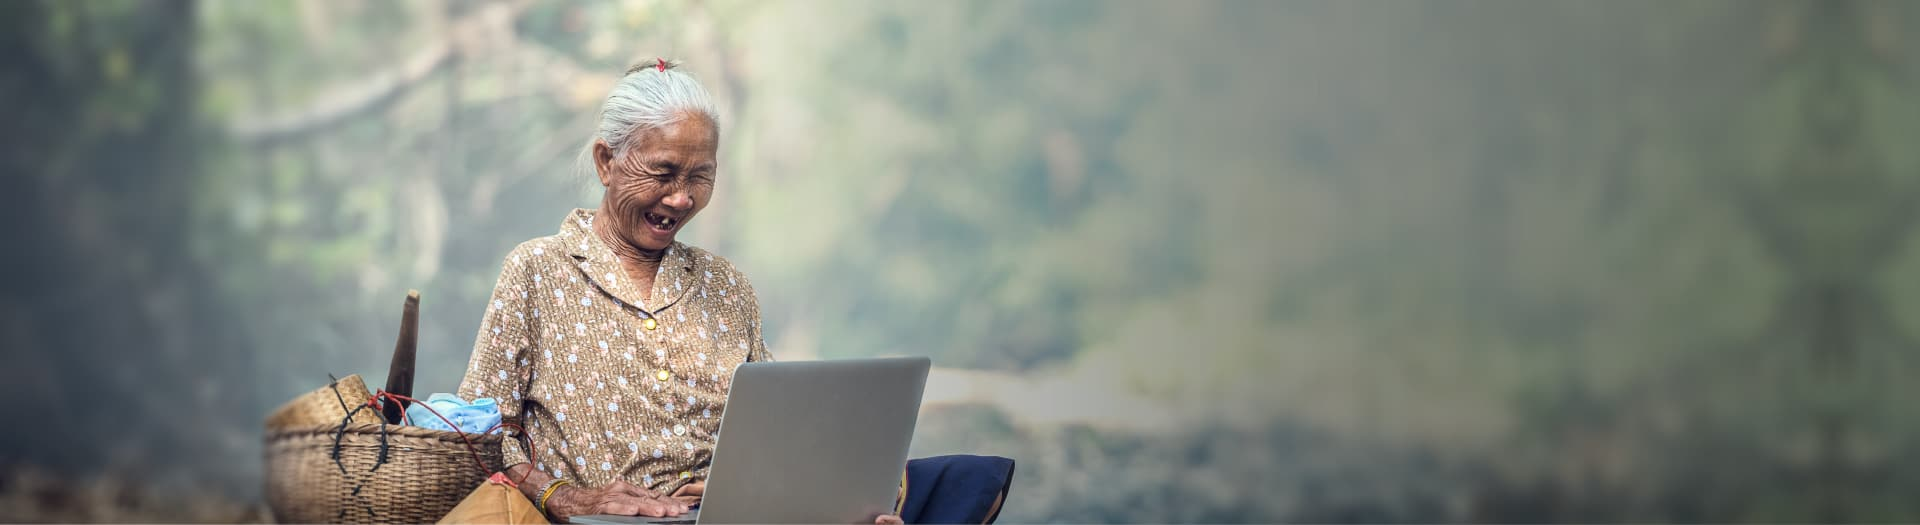 old lady smiling looking at computer